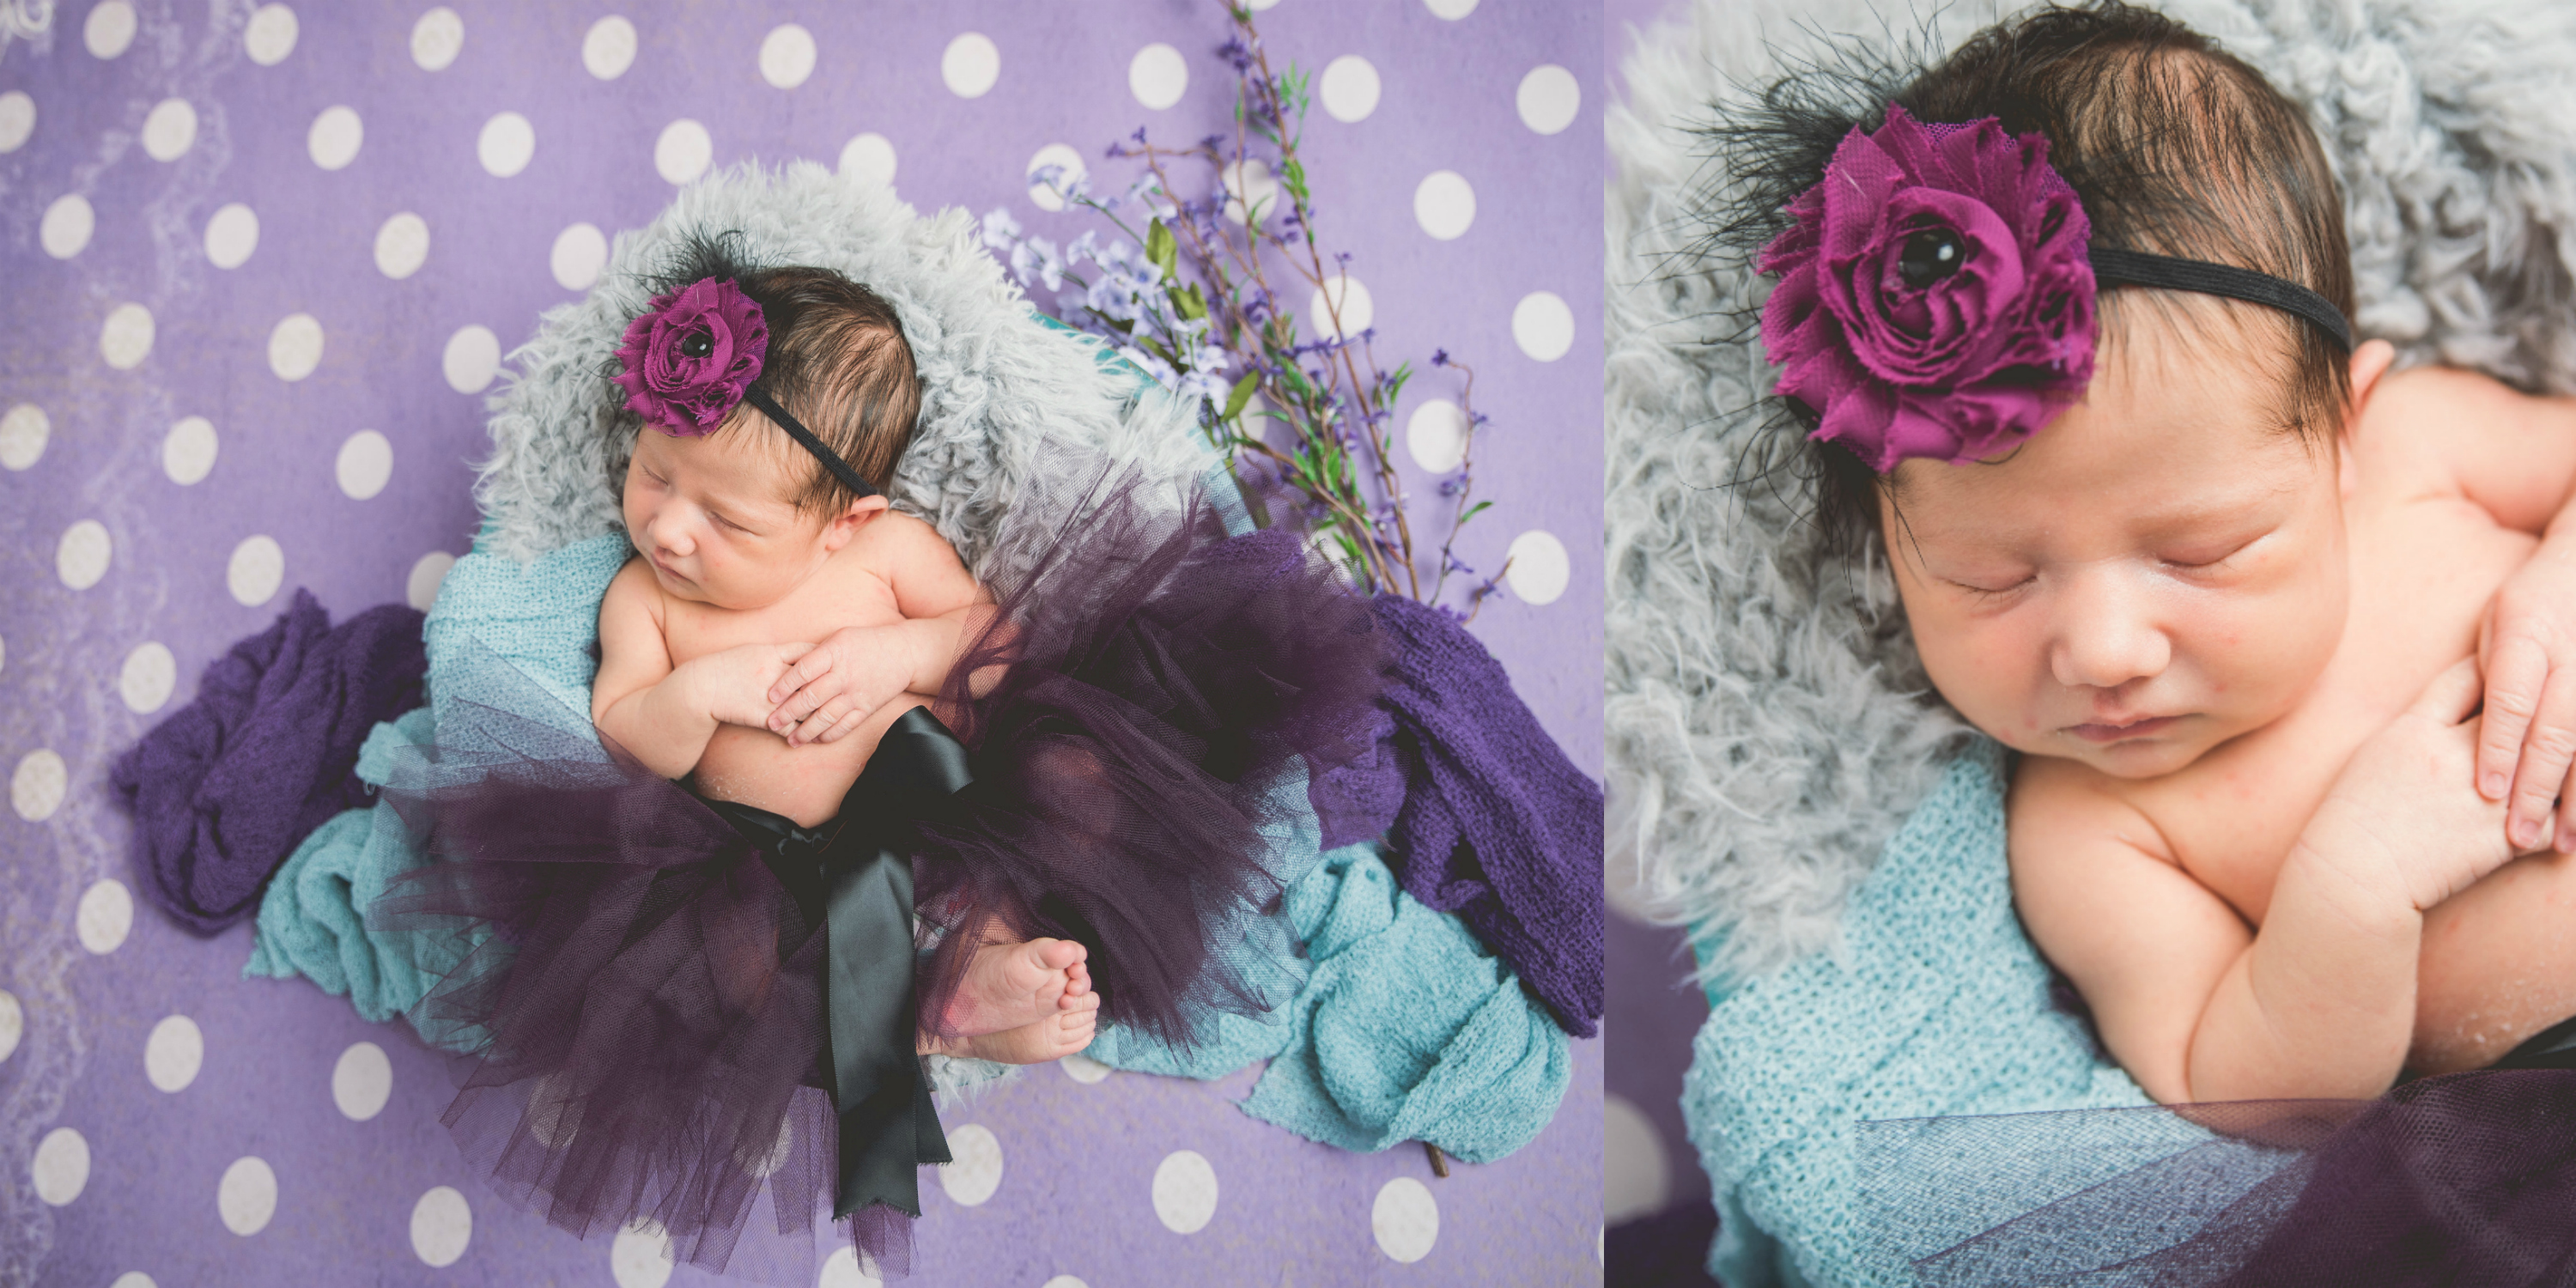 Monago-Newborn-Photographer-Utah-Stacey-Hansen-Photography (4)